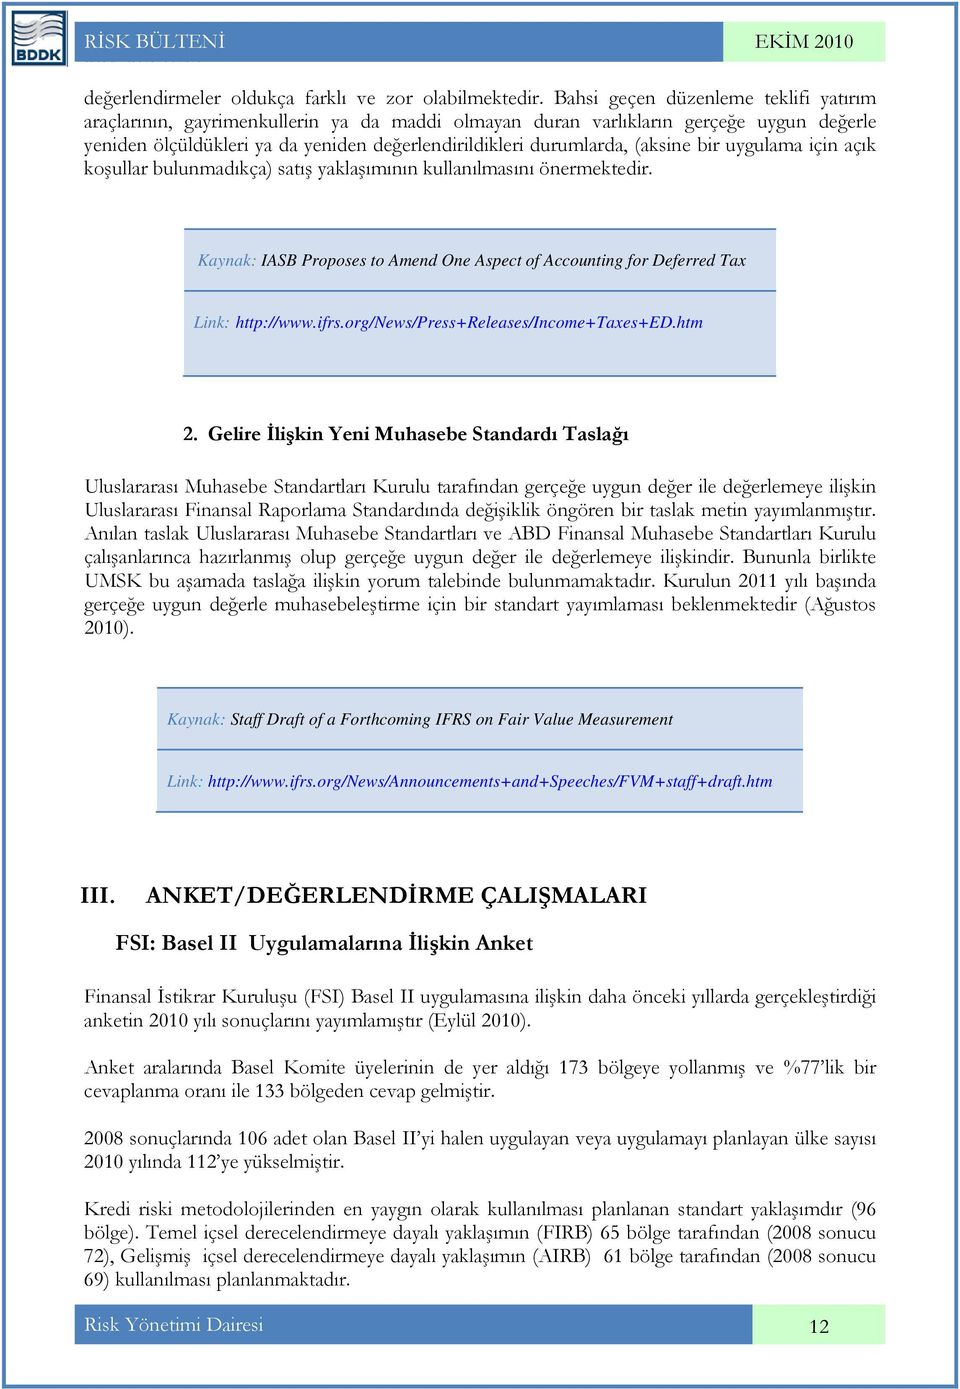 (aksine bir uygulama için açık koşullar bulunmadıkça) satış yaklaşımının kullanılmasını önermektedir. Kaynak: IASB Proposes to Amend One Aspect of Accounting for Deferred Tax Link: http://www.ifrs.